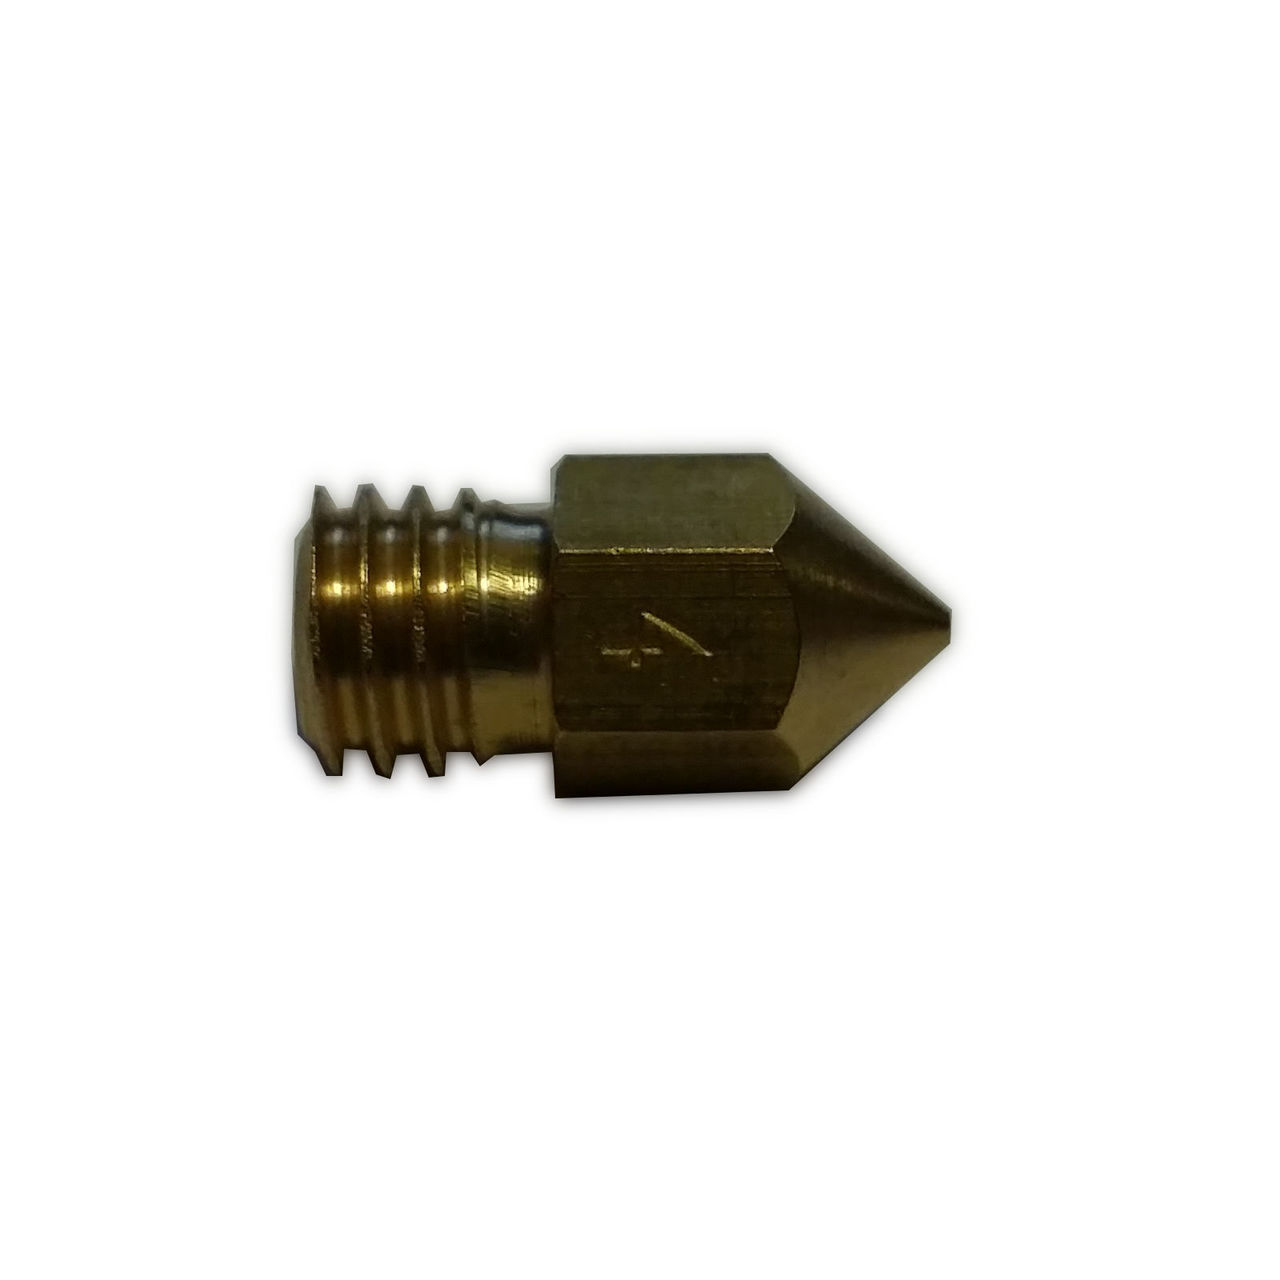 MK8 Brass Nozzle - 3D Printing Canada